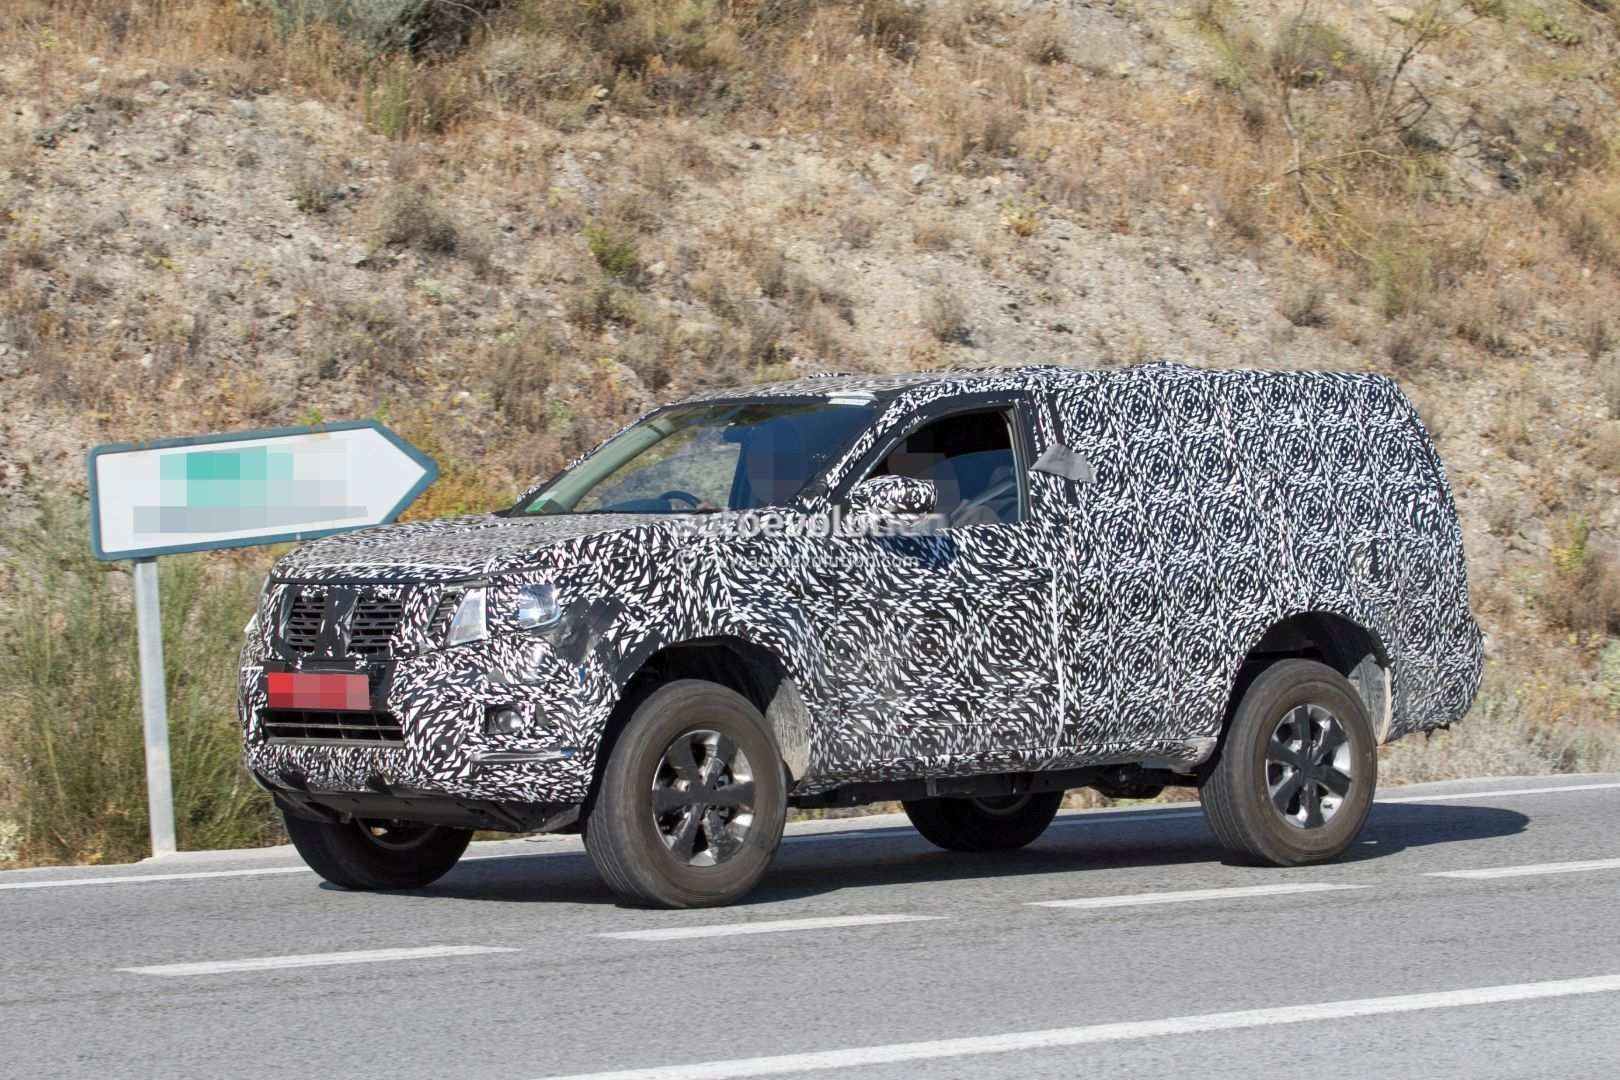 89 All New 2019 Nissan Pathfinder Release Date Spesification